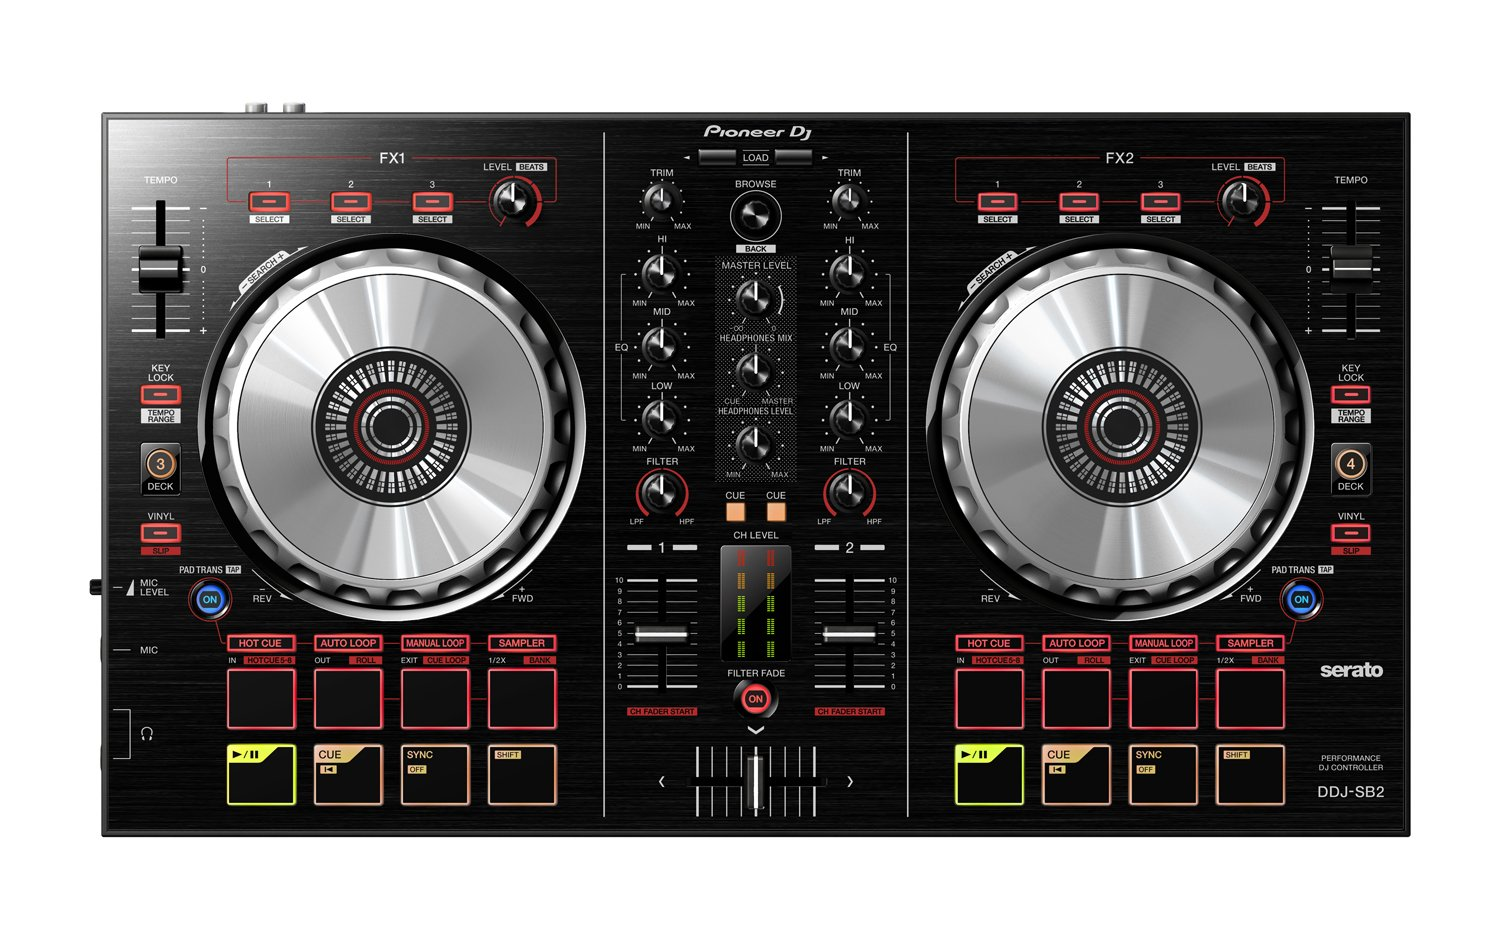 Bad Dj Set 10 Best Dj Controllers In 2019 Buying Guide Music Critic